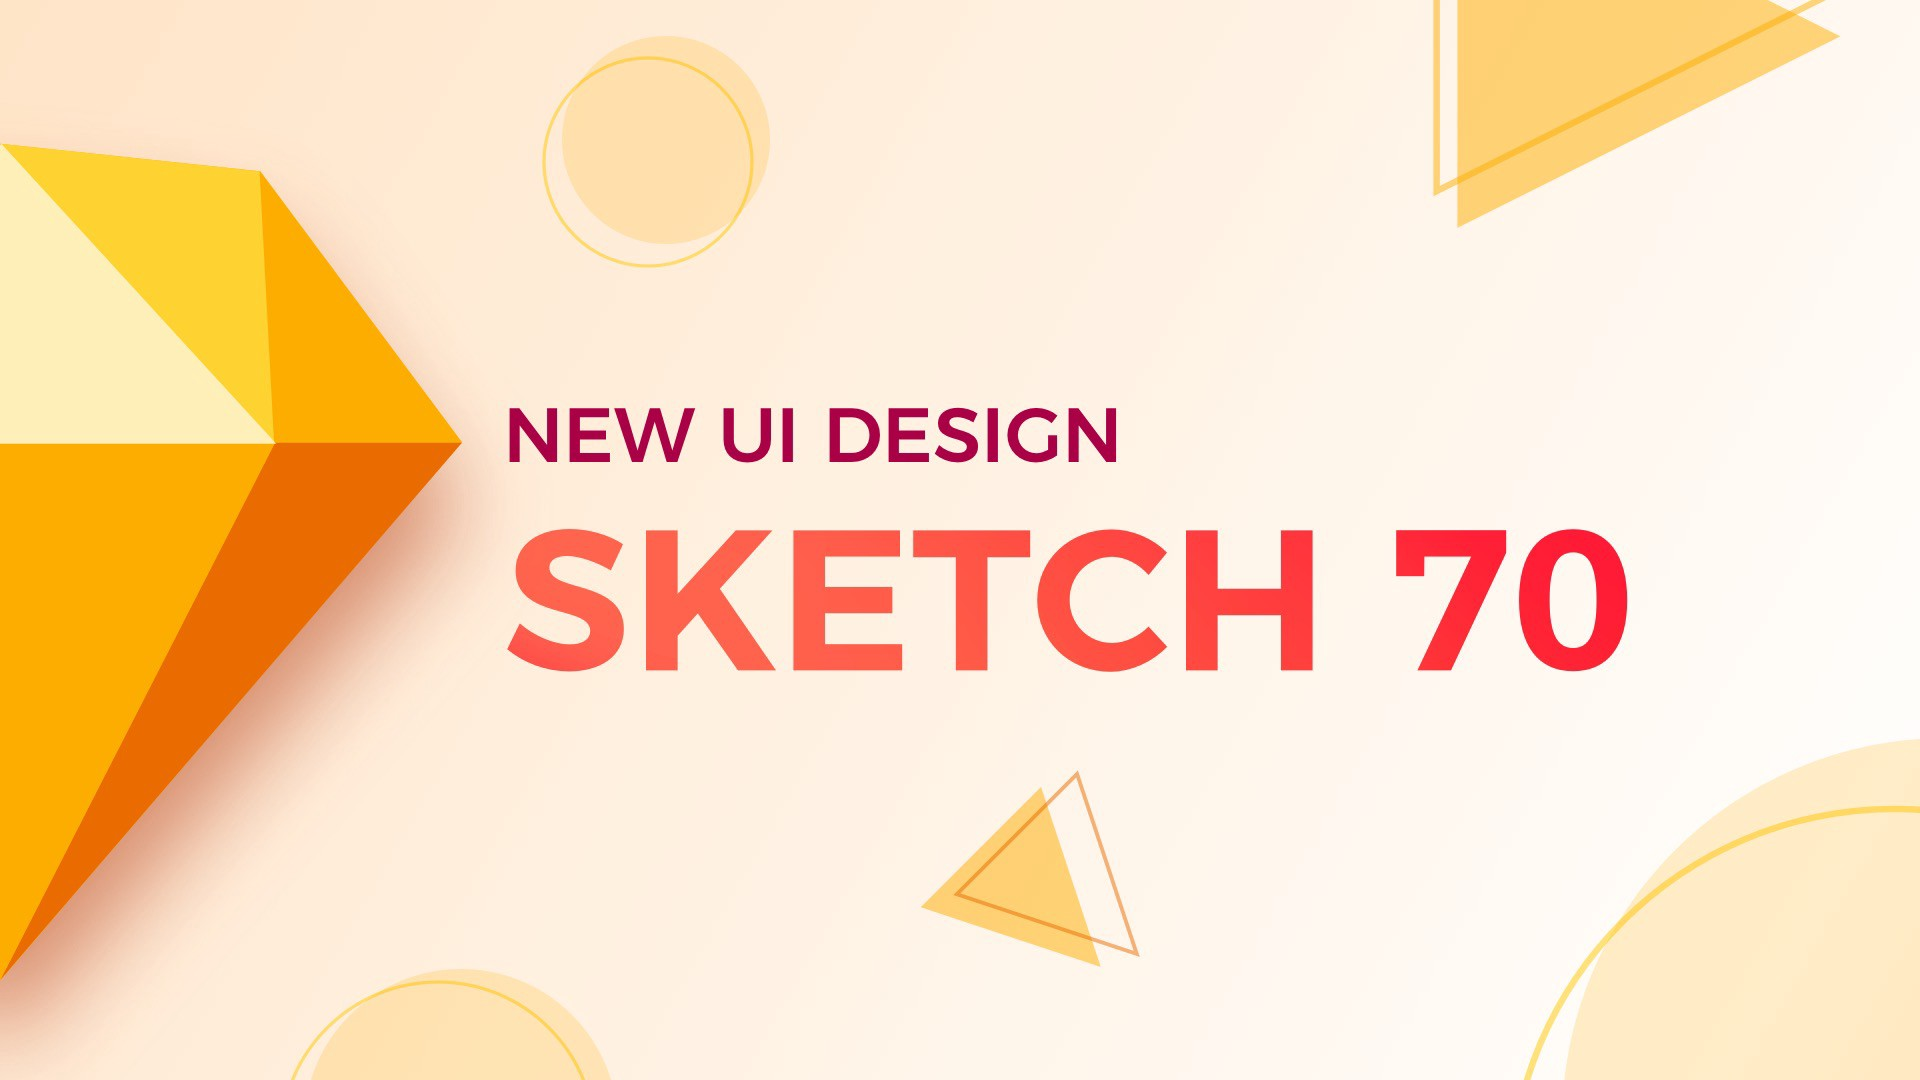 Sketch 70—featured image